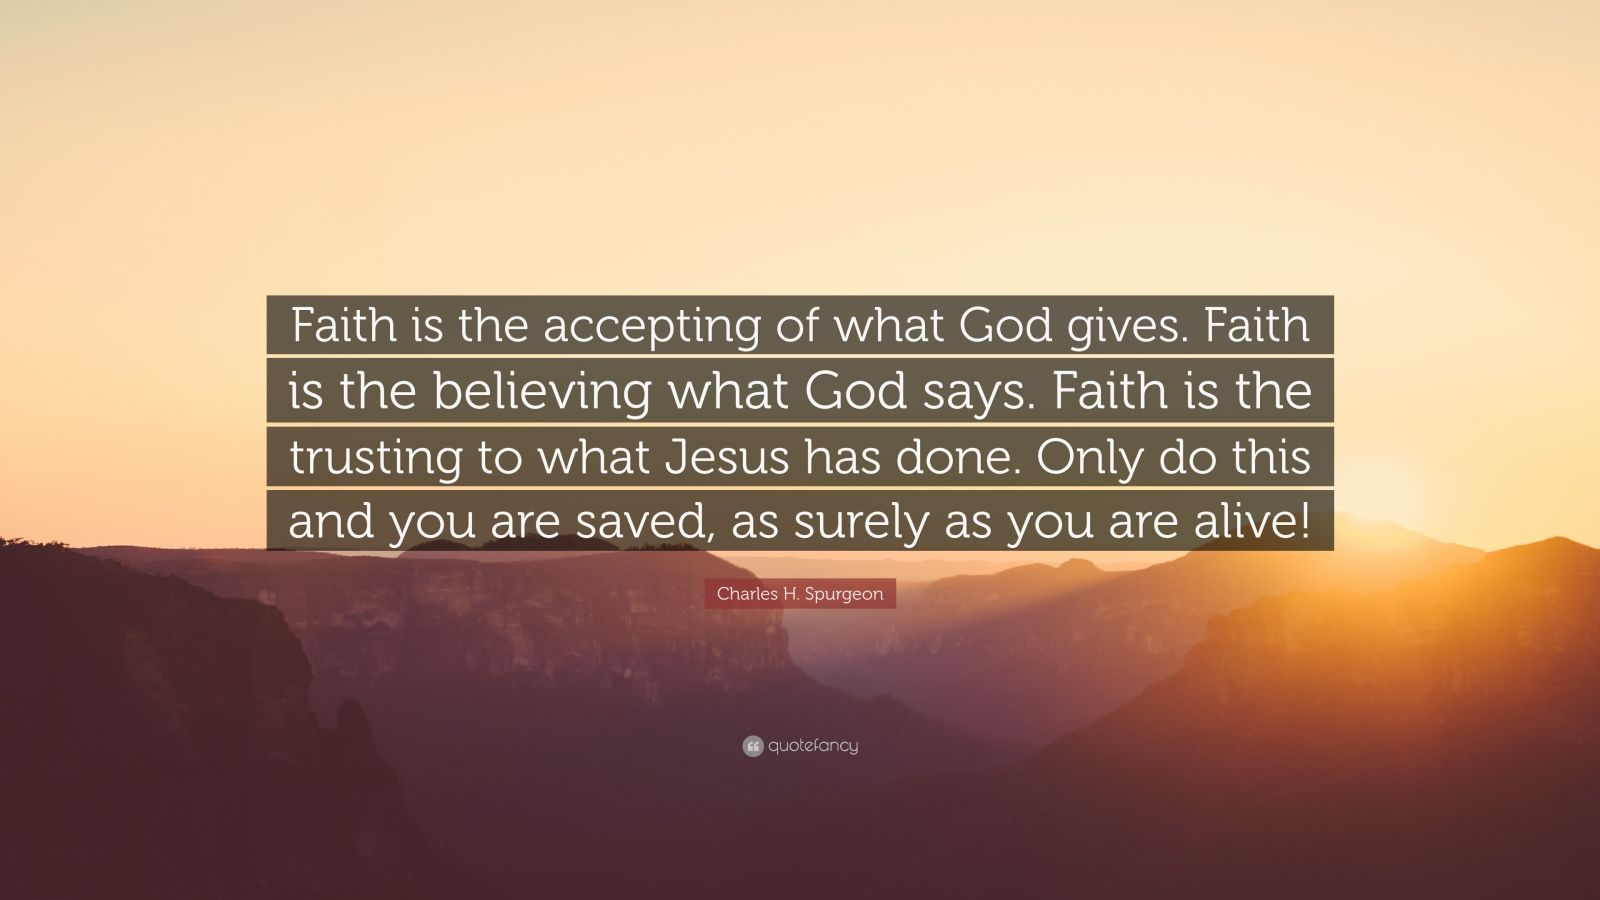 """Charles H. Spurgeon Quote: """"Faith is the accepting of what God gives. Faith is the believing what God says. Faith is the trusting to what Jesus has done. Only do this and you are saved, as surely as you are alive!"""""""